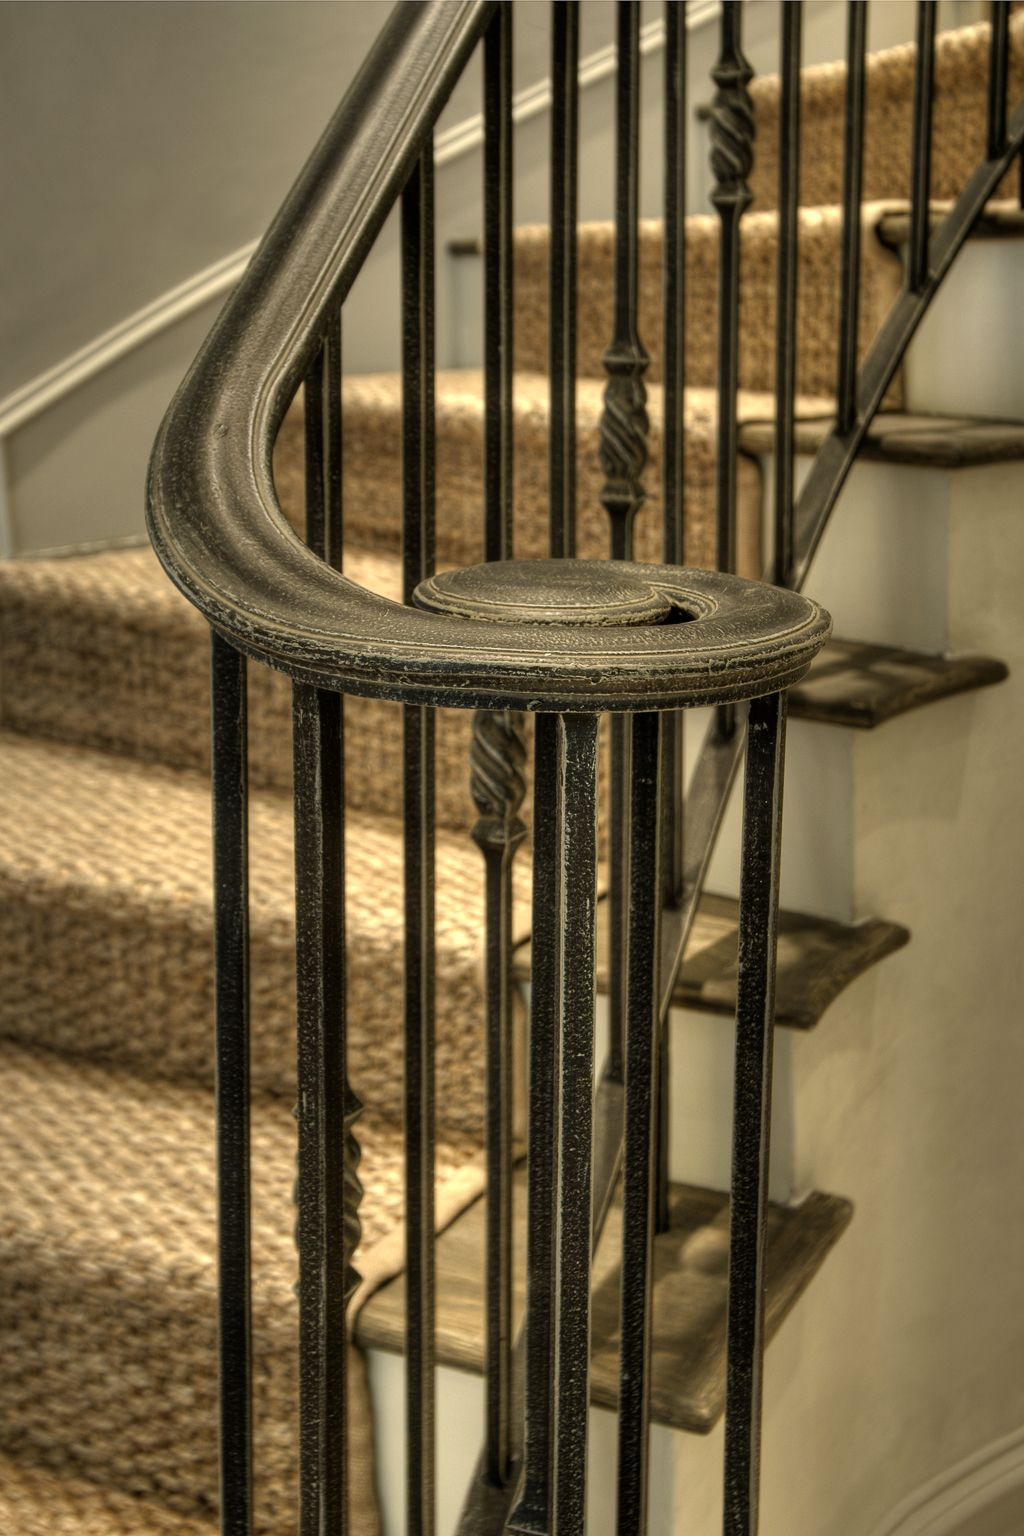 Stair Railing Painted Black With Milk Wash Glazes To